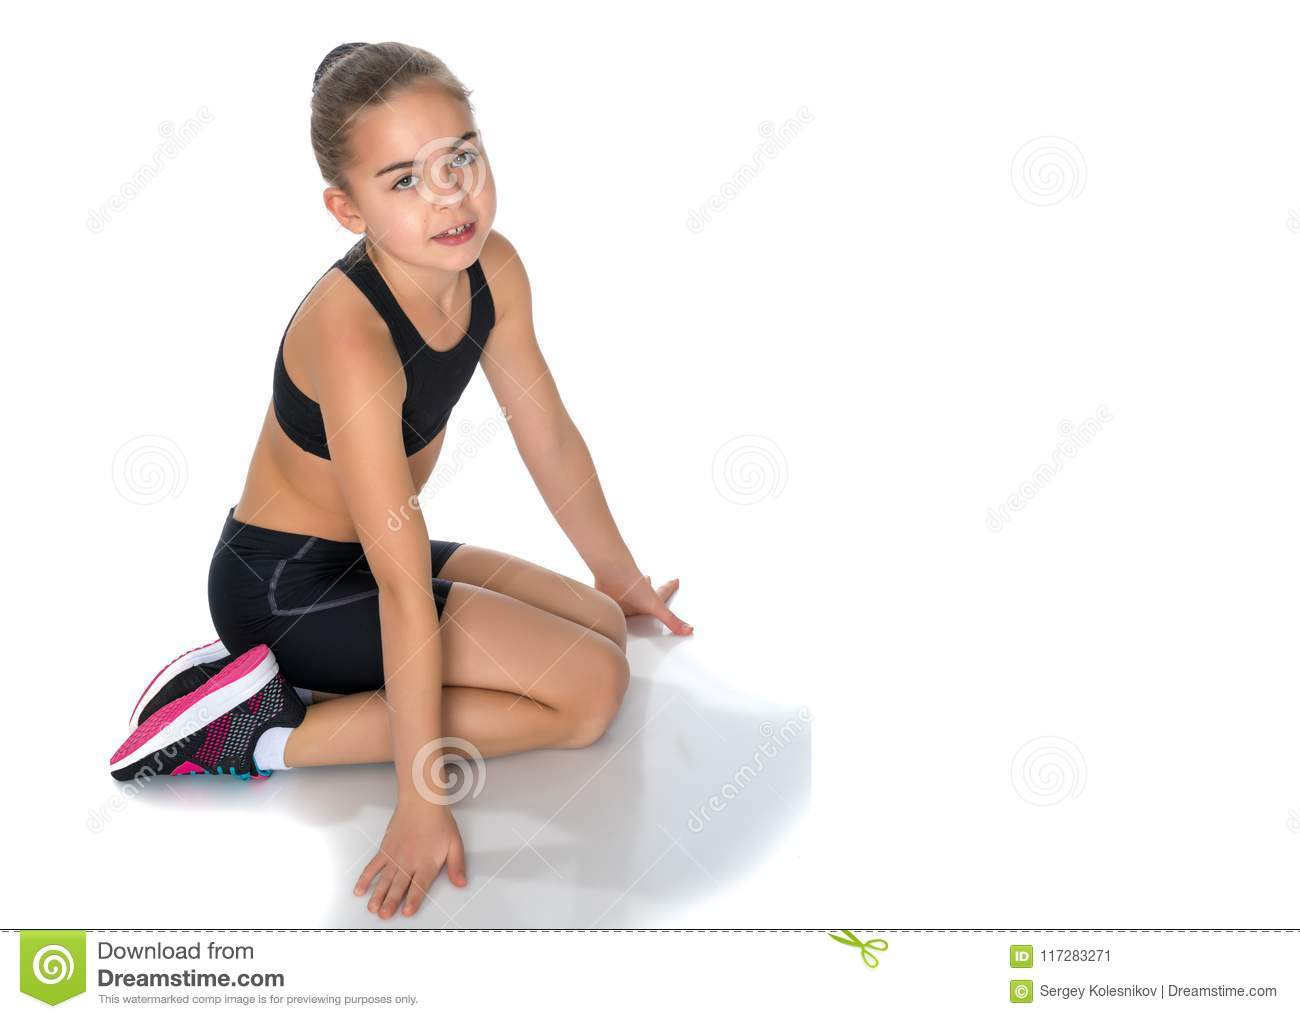 95fafdffc The Little Gymnast Perform An Acrobatic Element On The Floor. Stock ...